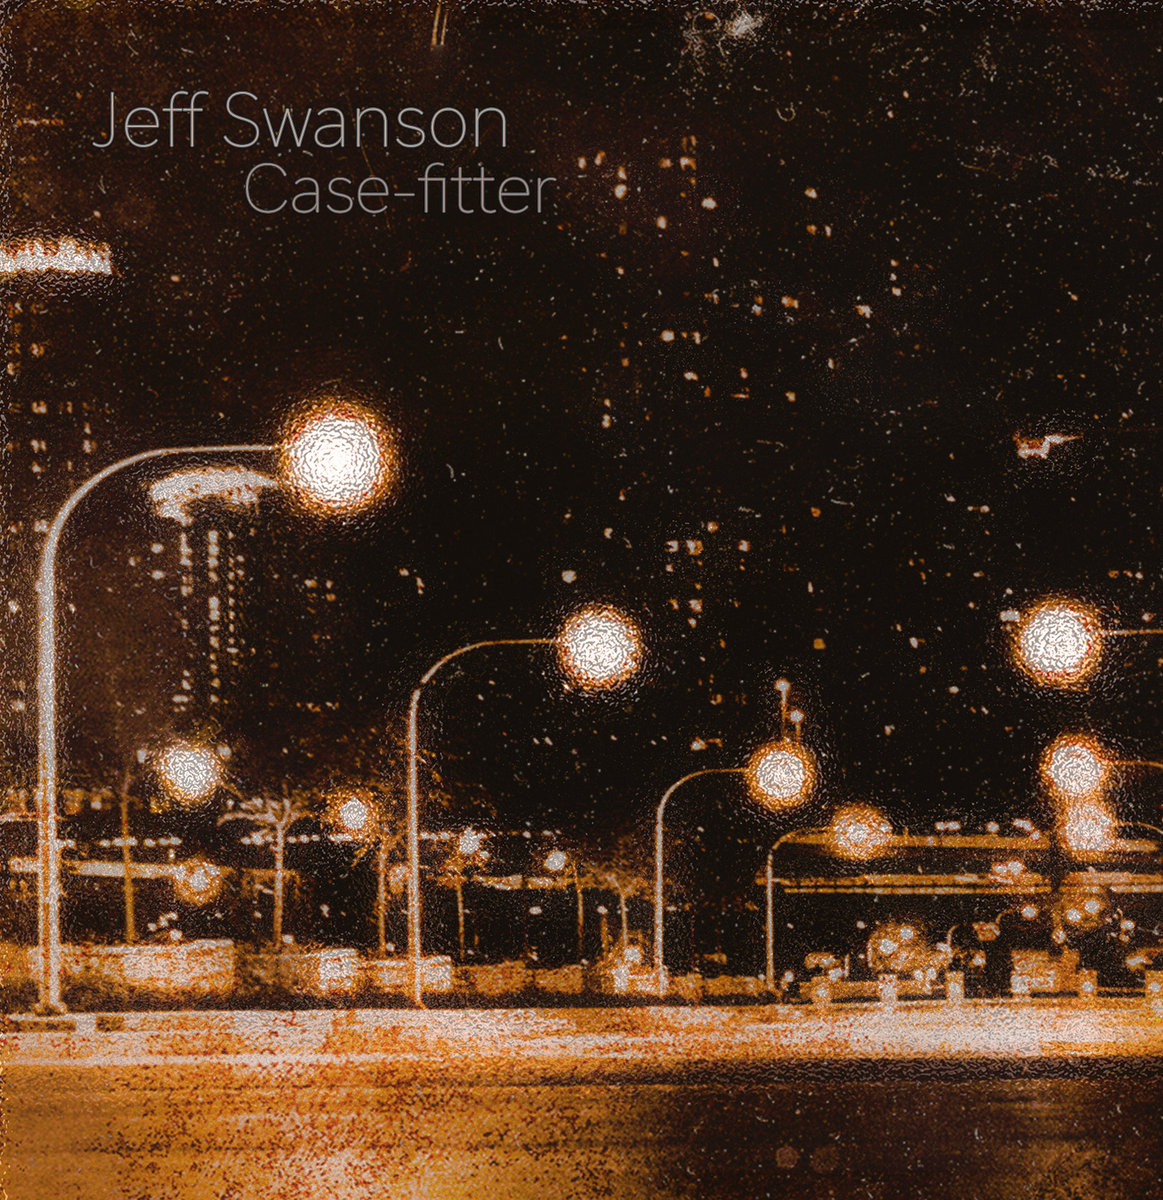 Jeff Swanson - Case-fitter (2018)